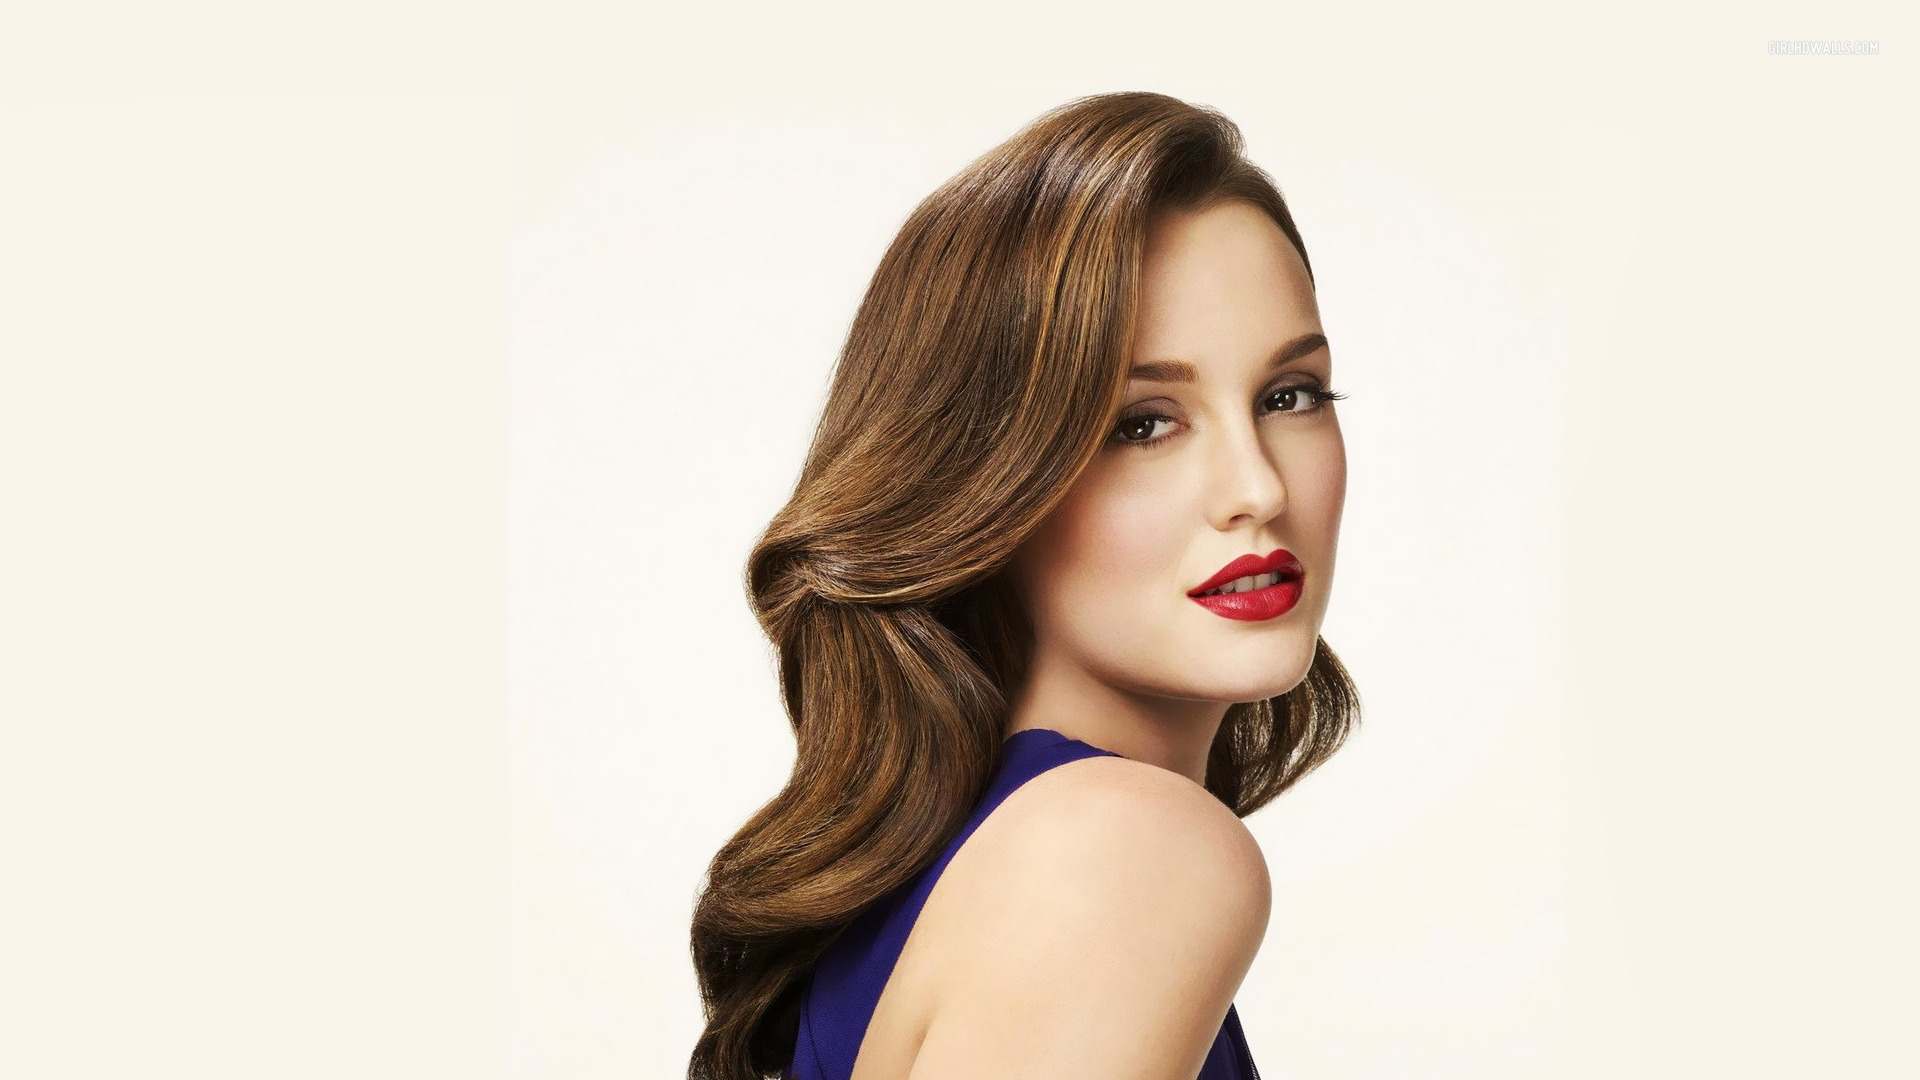 Leighton Meester Wallpaper HD